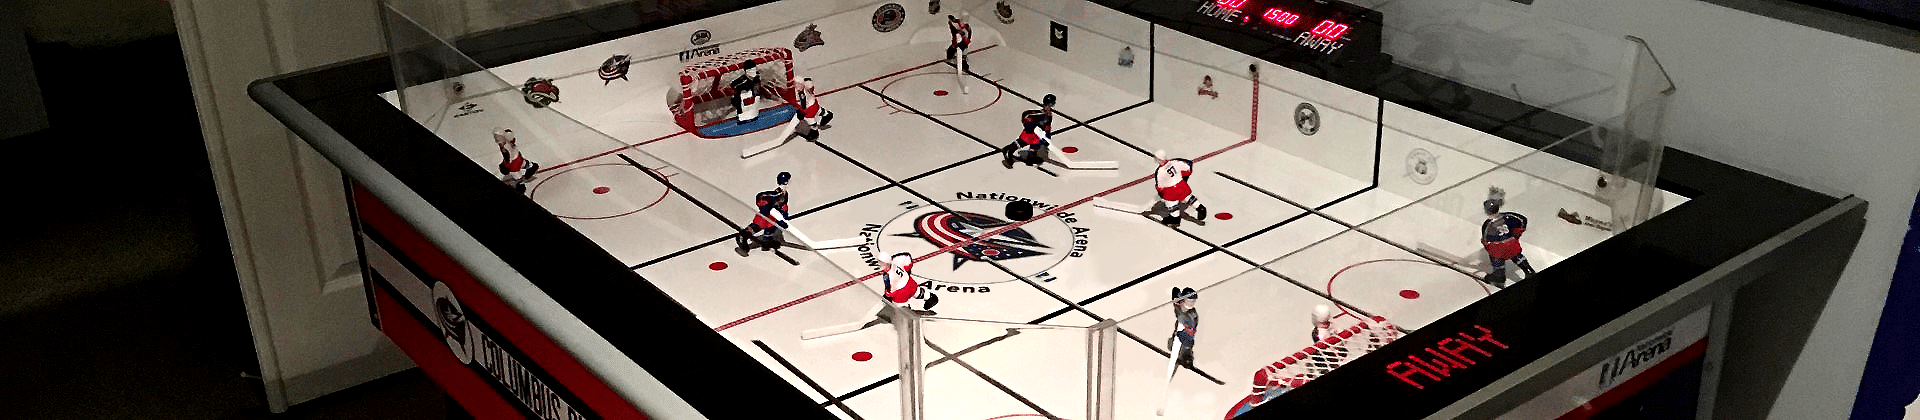 6 Best Table Hockey Games Reviewed In Detail Apr 2020